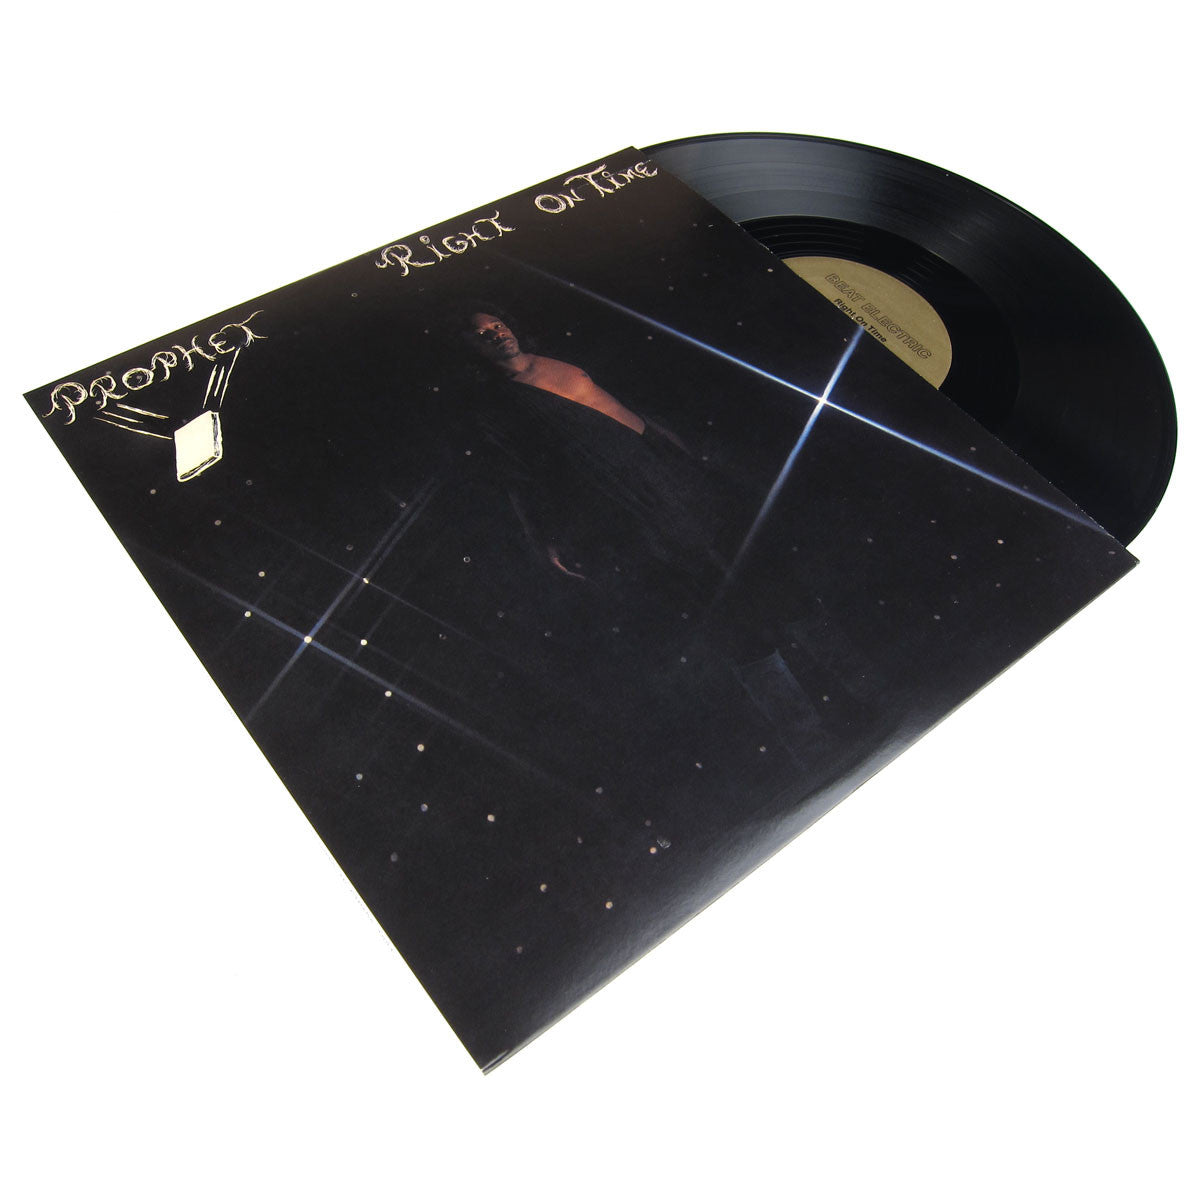 Prophet: Right On Time Vinyl LP